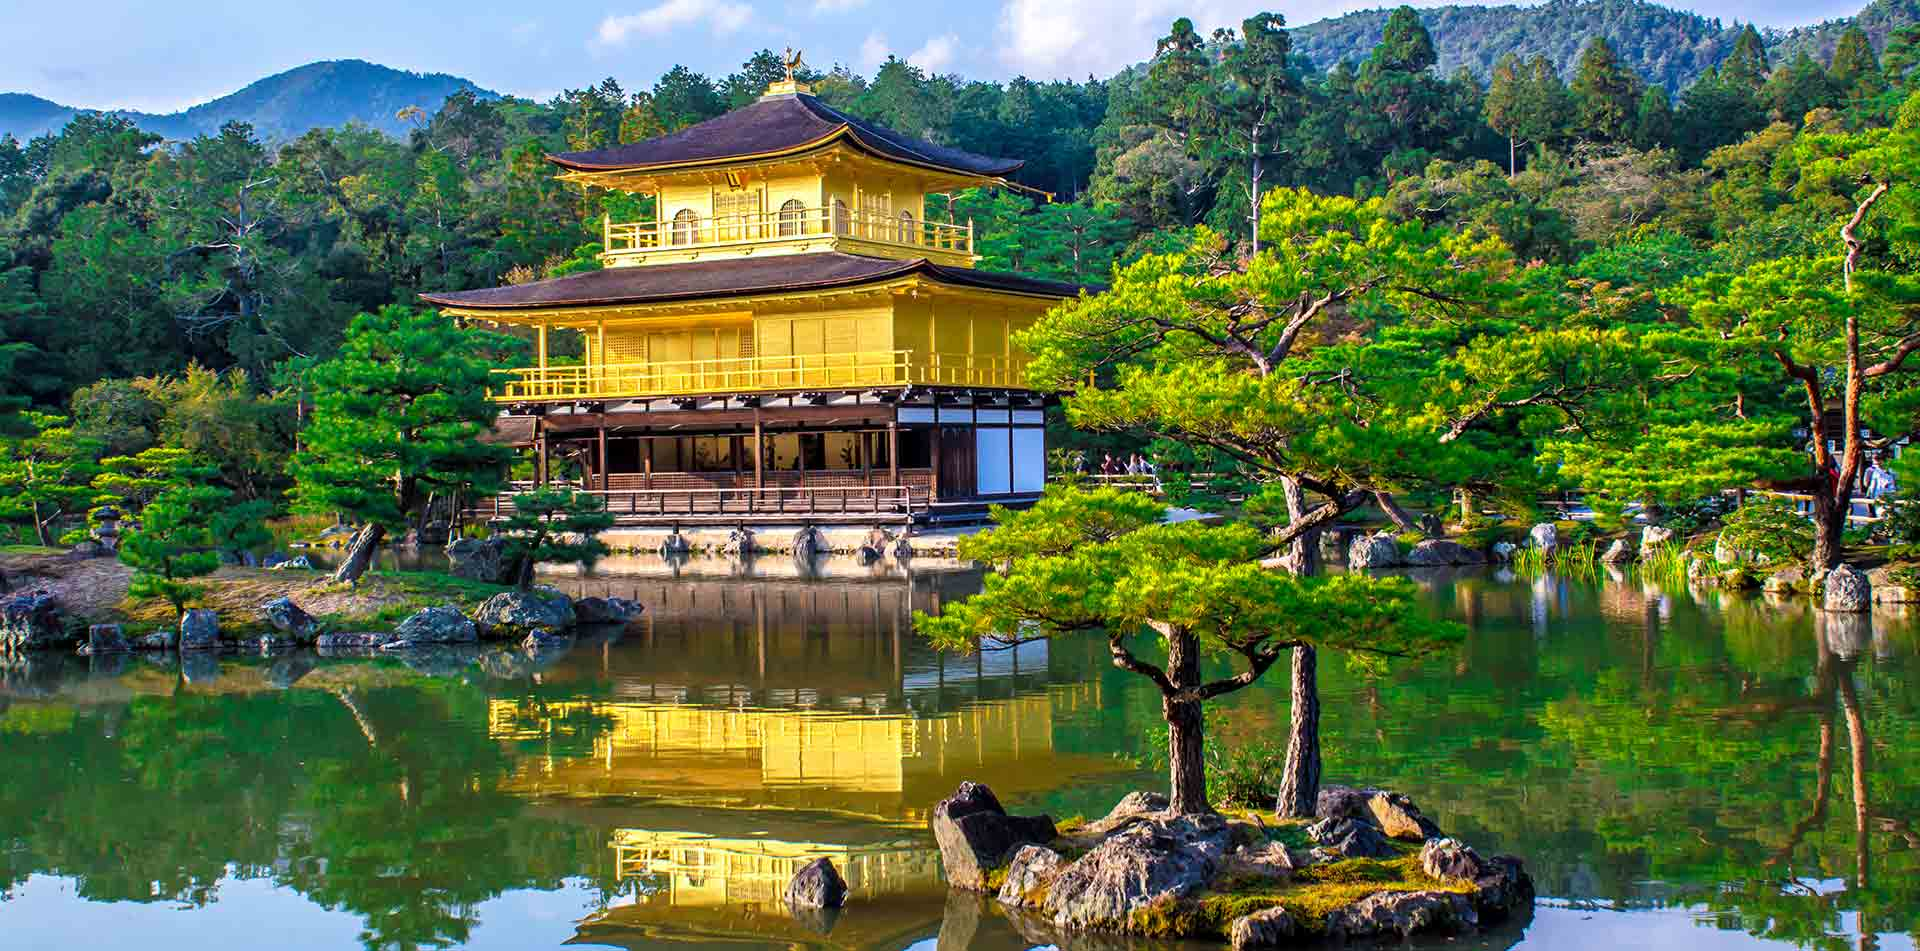 Buddhist Temple in Kyoto, Japan